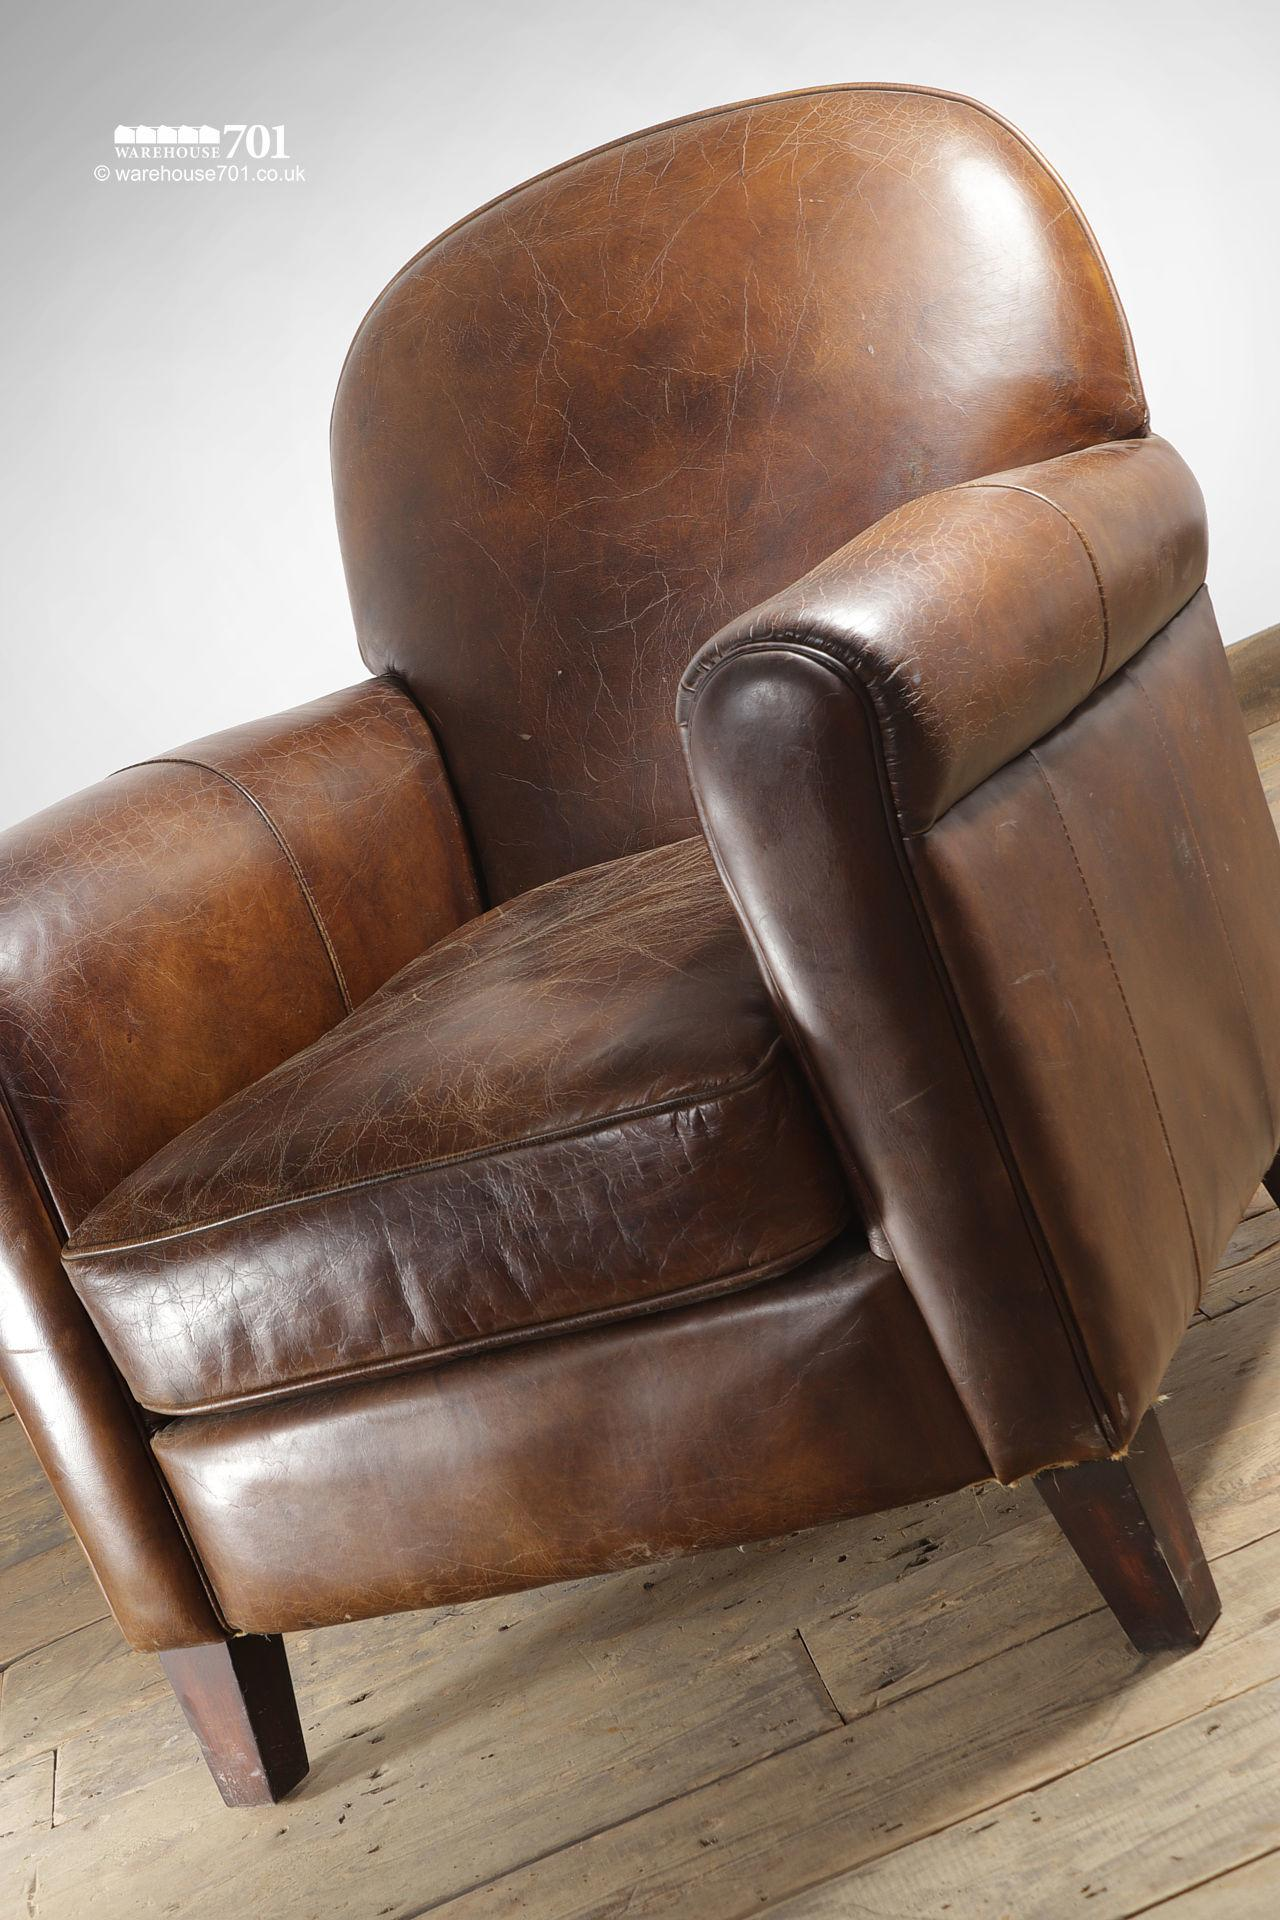 Beautifully Pre-Aged Tan Leather Armchair with Rounded Arms and Back #2